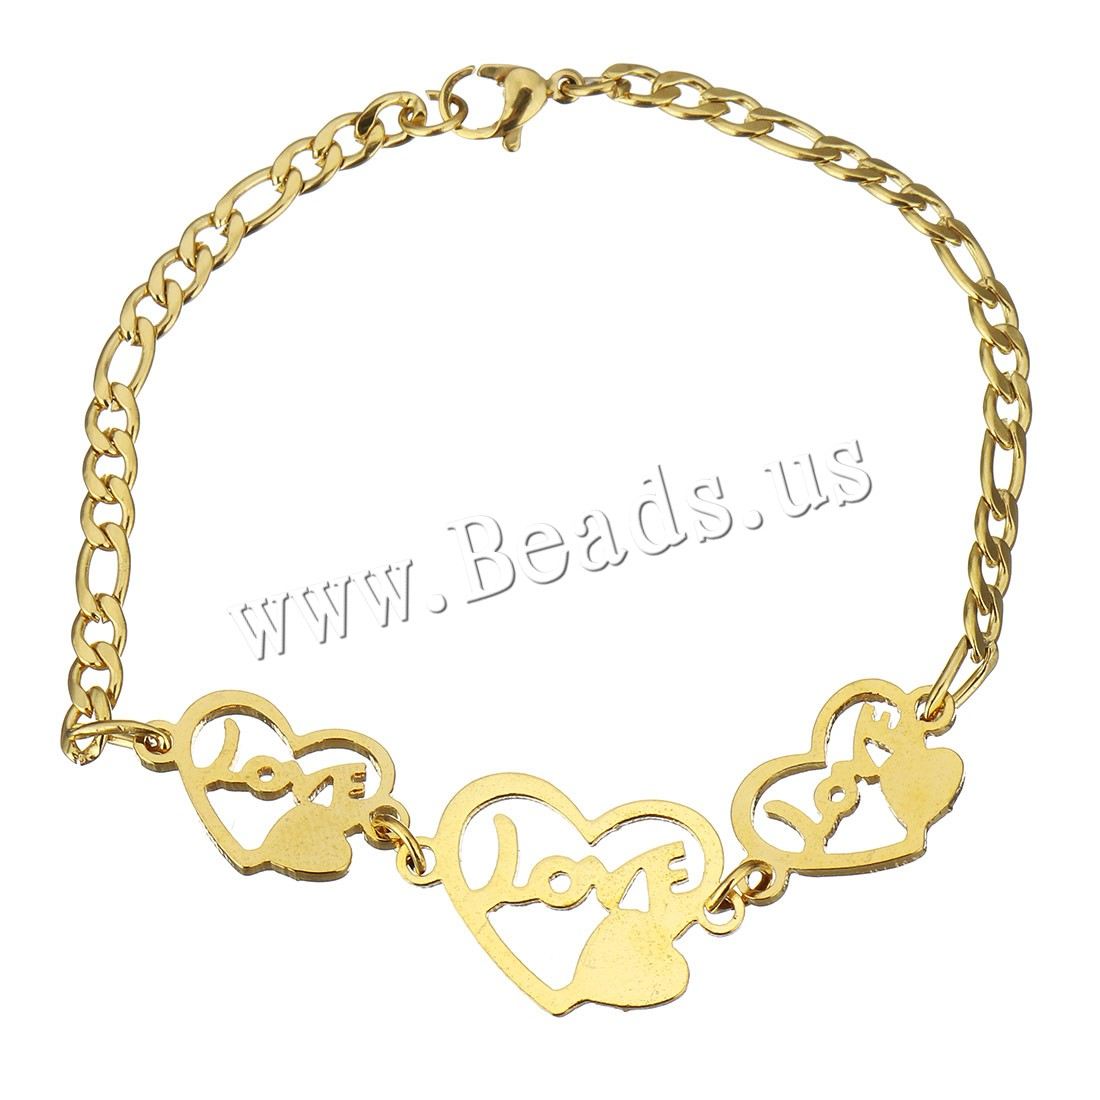 Buy Stainless Steel Jewelry Bracelet Heart word love gold color plated curb chain & woman 23x15mm 19x12mm 4mm Sold Per Approx 7.5 Inch Strand